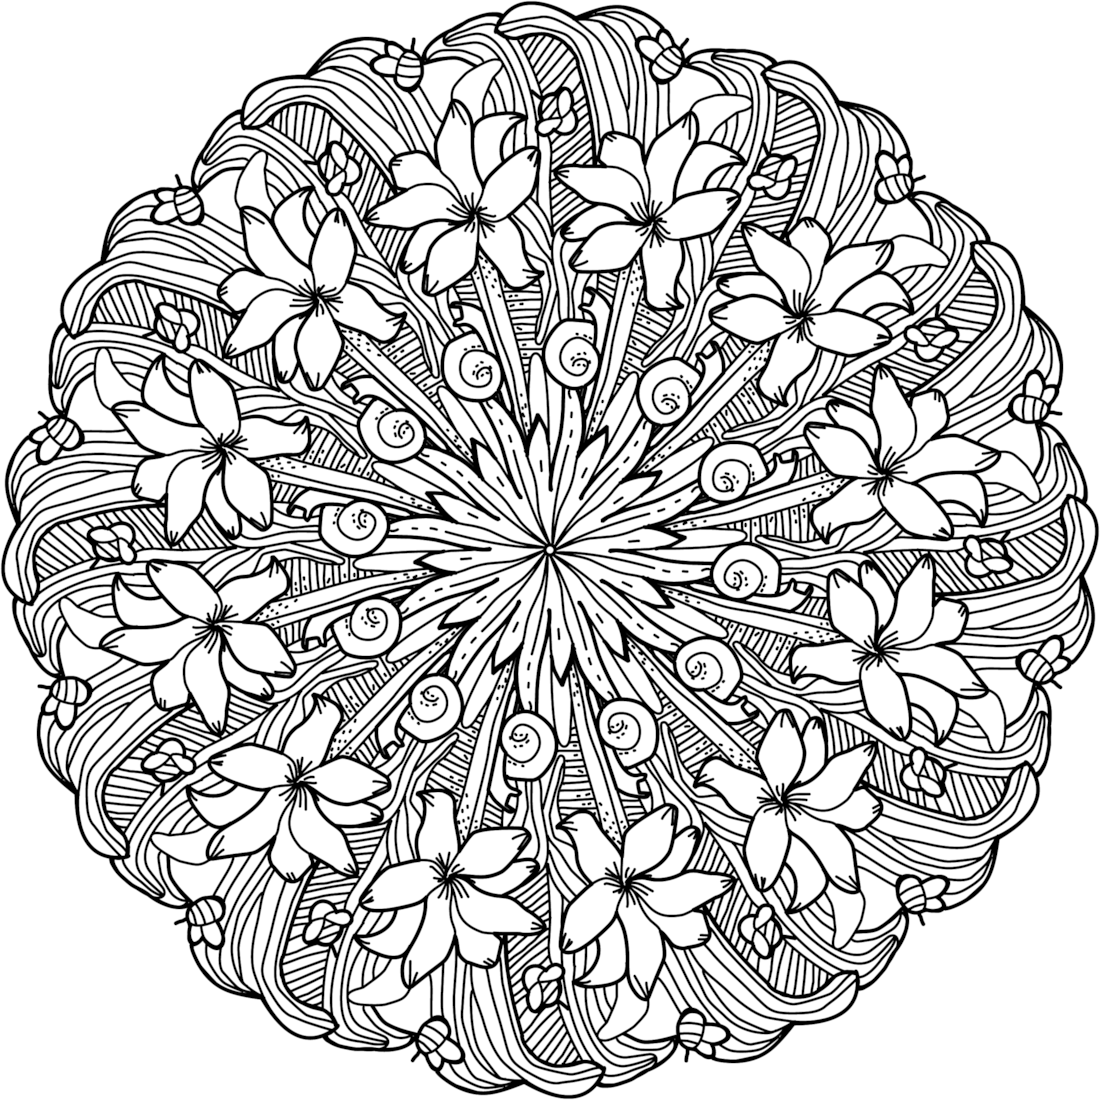 coloring prints for adults free printable abstract coloring pages for adults coloring for prints adults